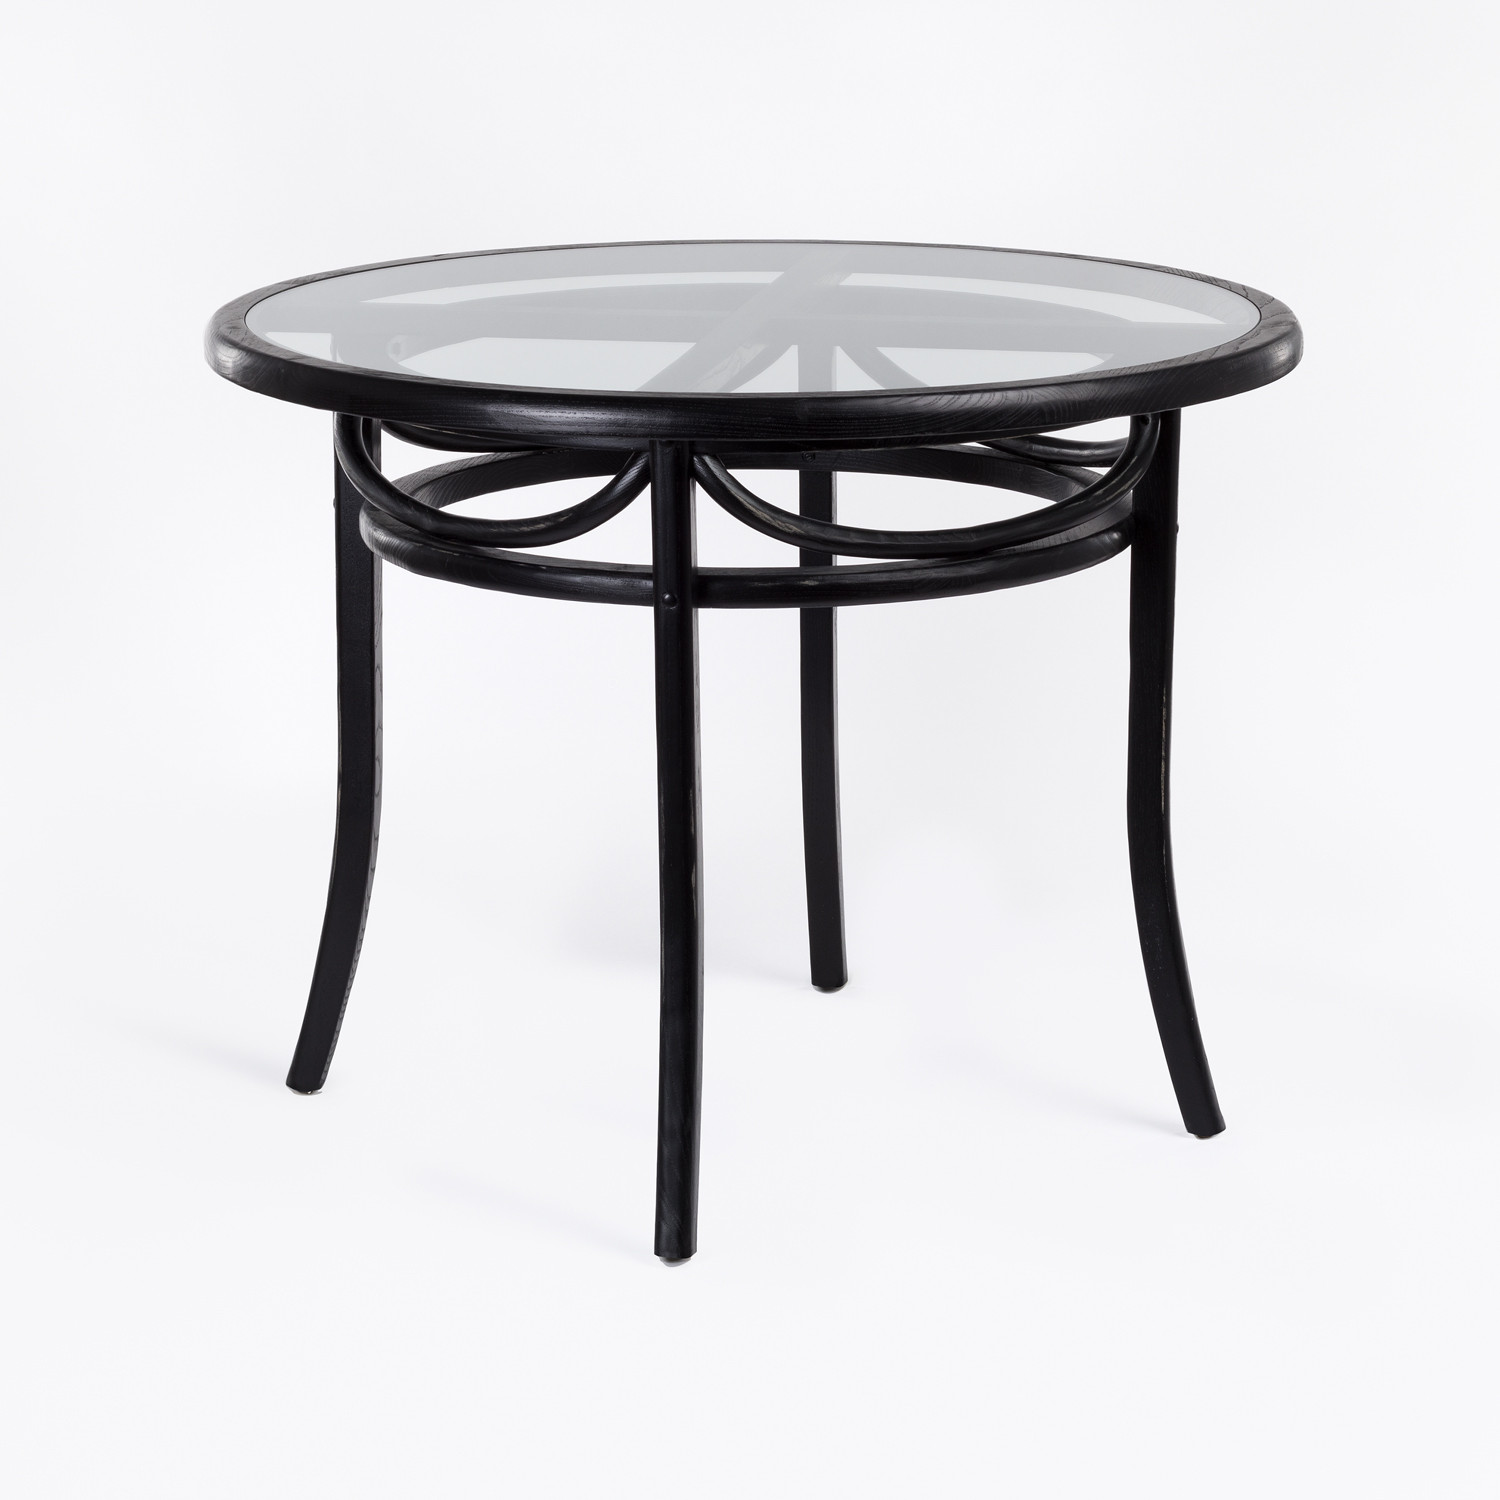 Thon Vintage Table, gallery image 1